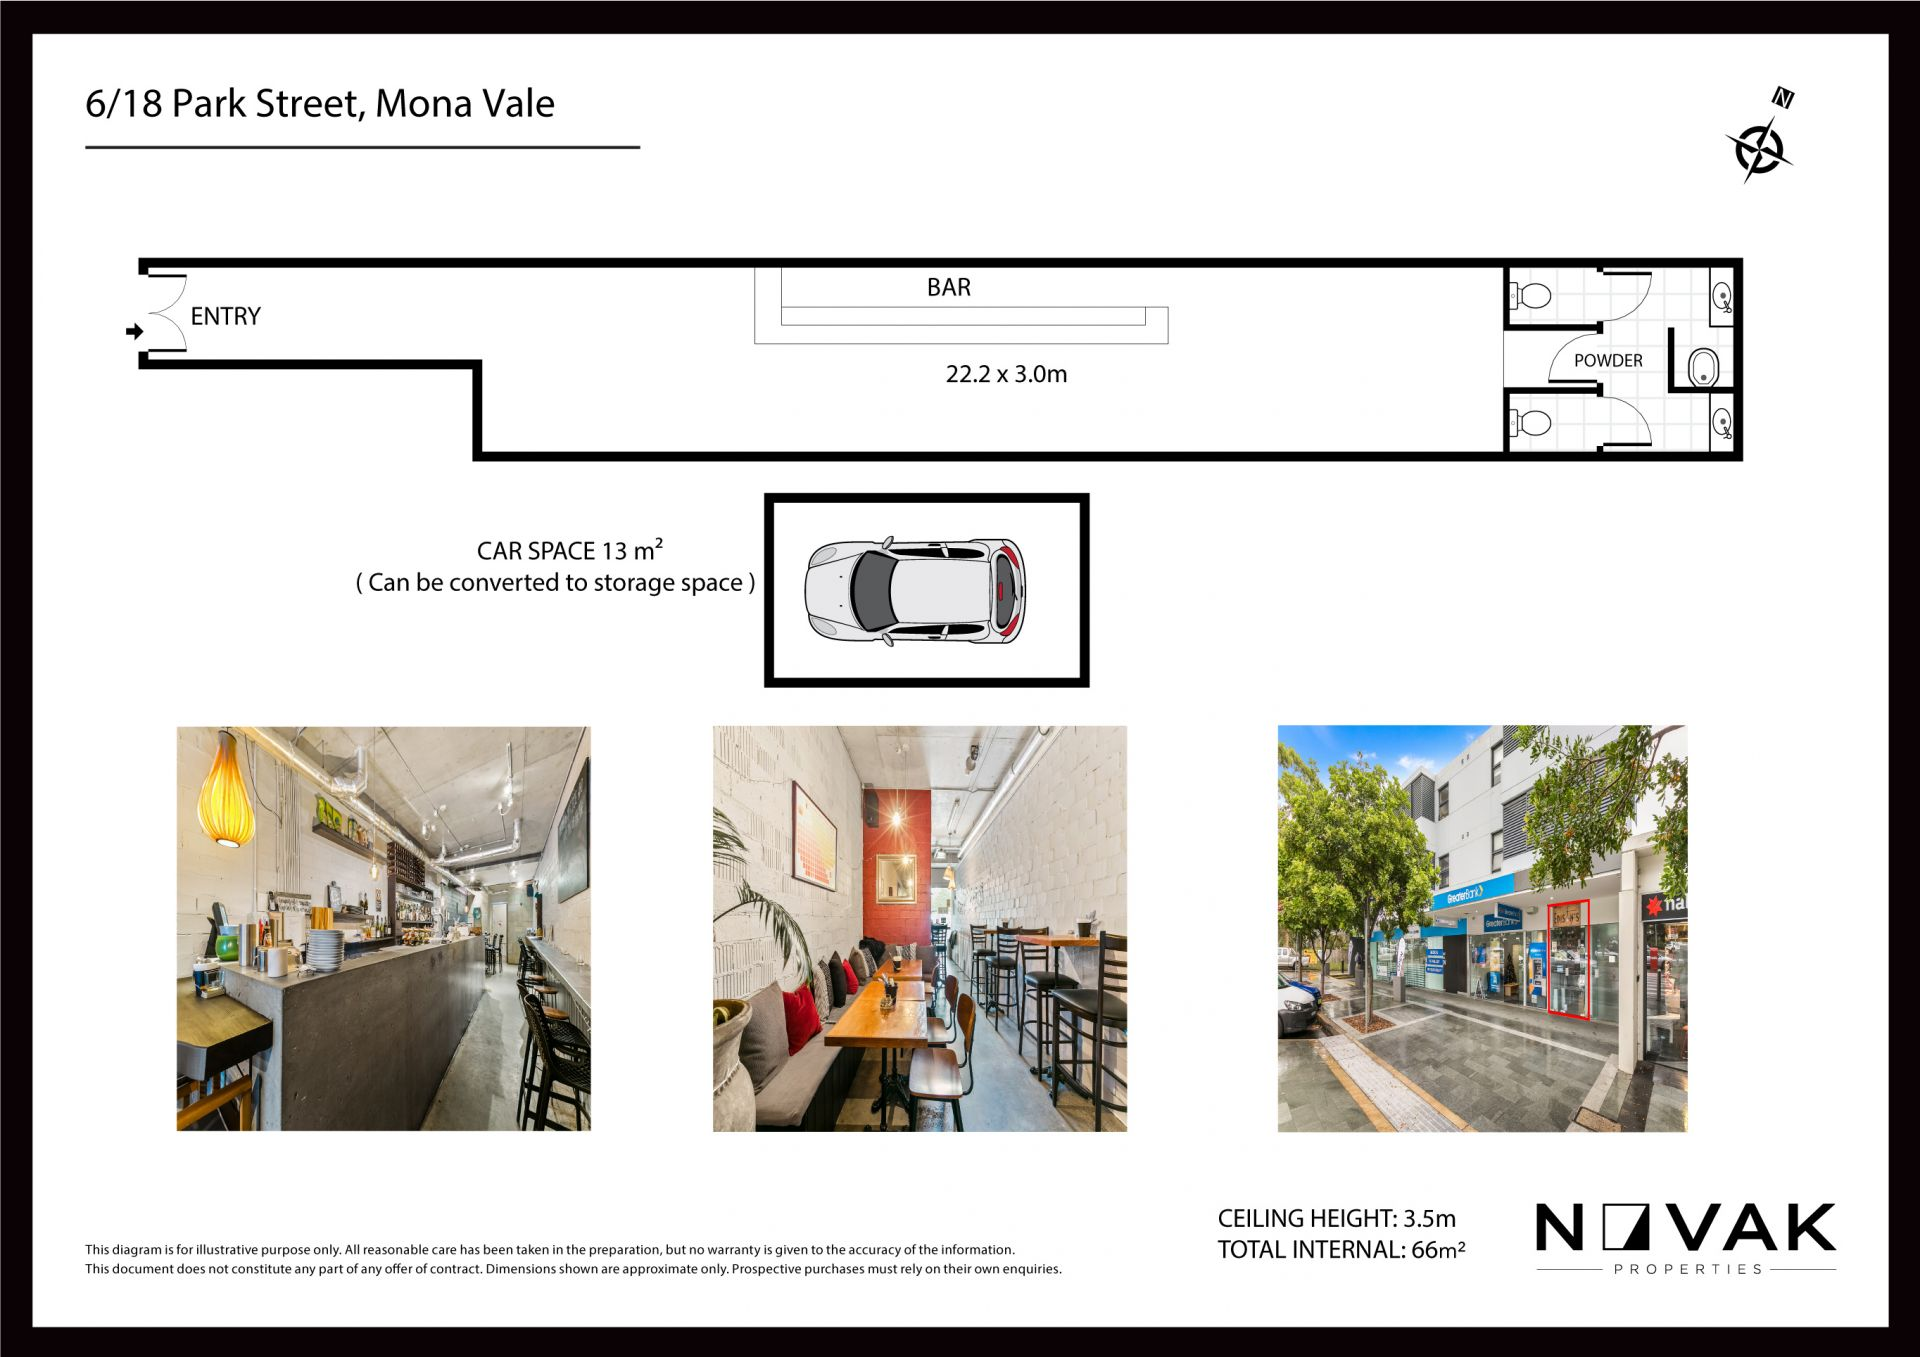 MUST SELL!! 6.5% RETURN NOW!! Prime Retail in the Heart of Mona Vale! Great Exposure & Entry Opportunity!!!